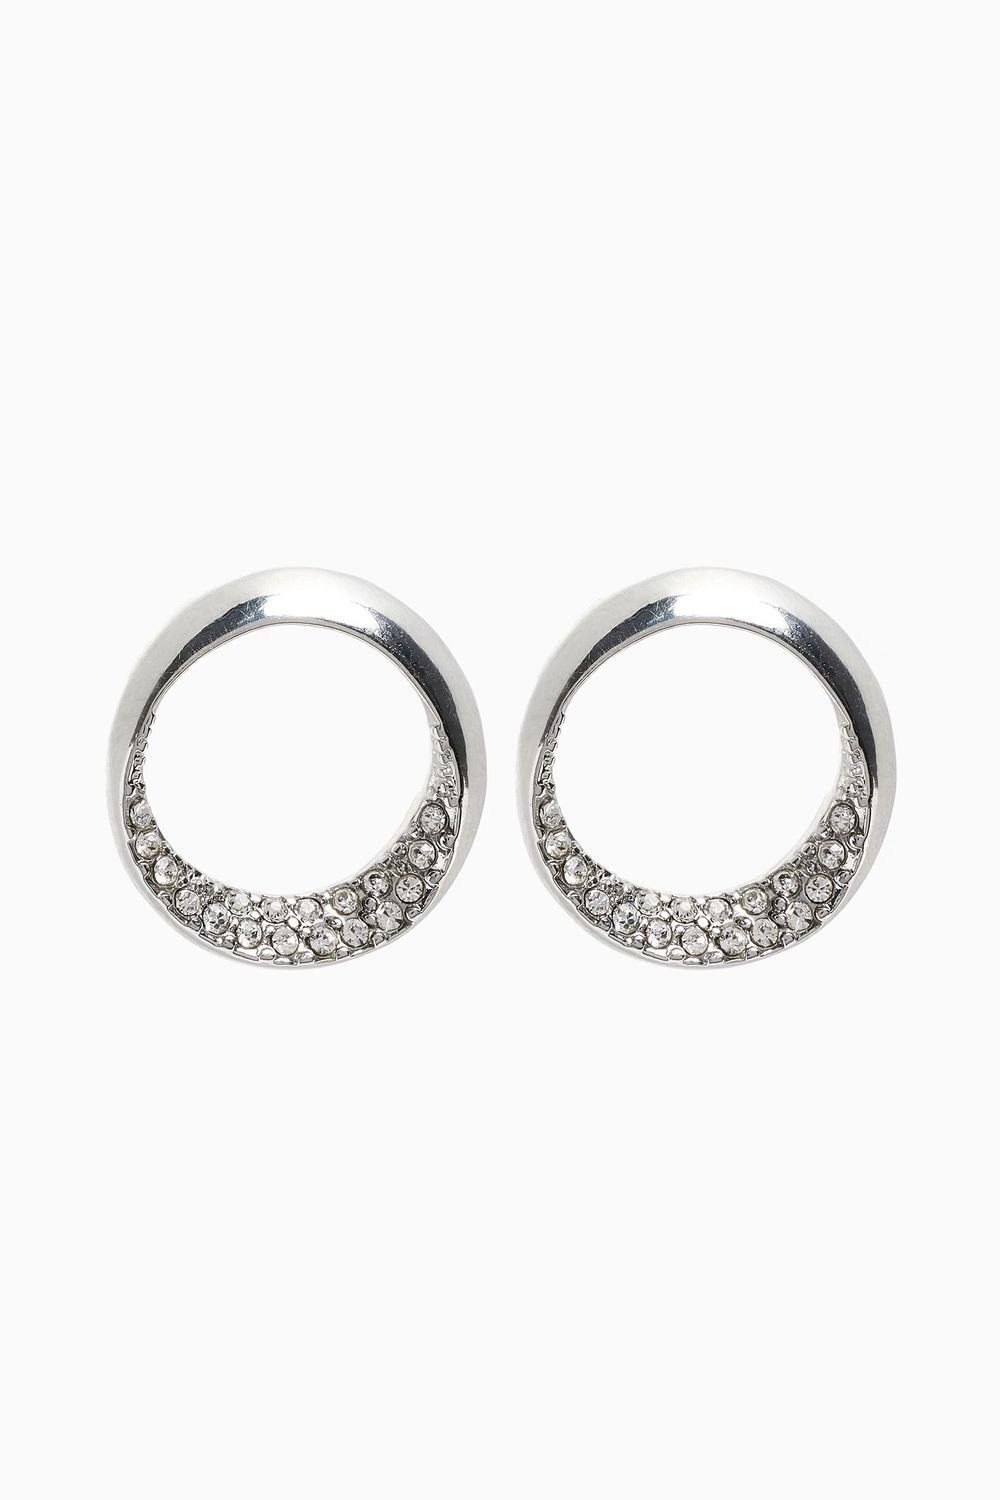 earrings open in products stud circle image hudson gold carter collections